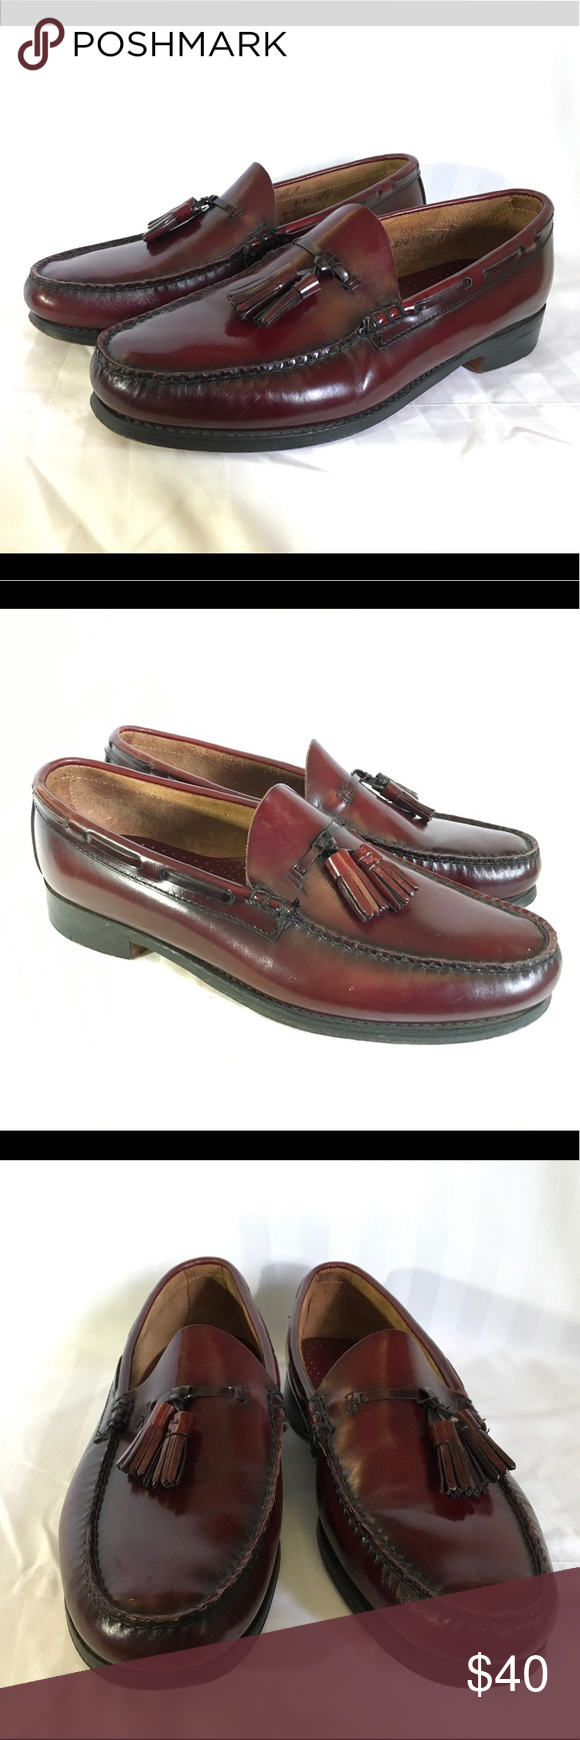 Bass Weejuns Mens Size 9.5 U.S. Burgundy Slip On Bass